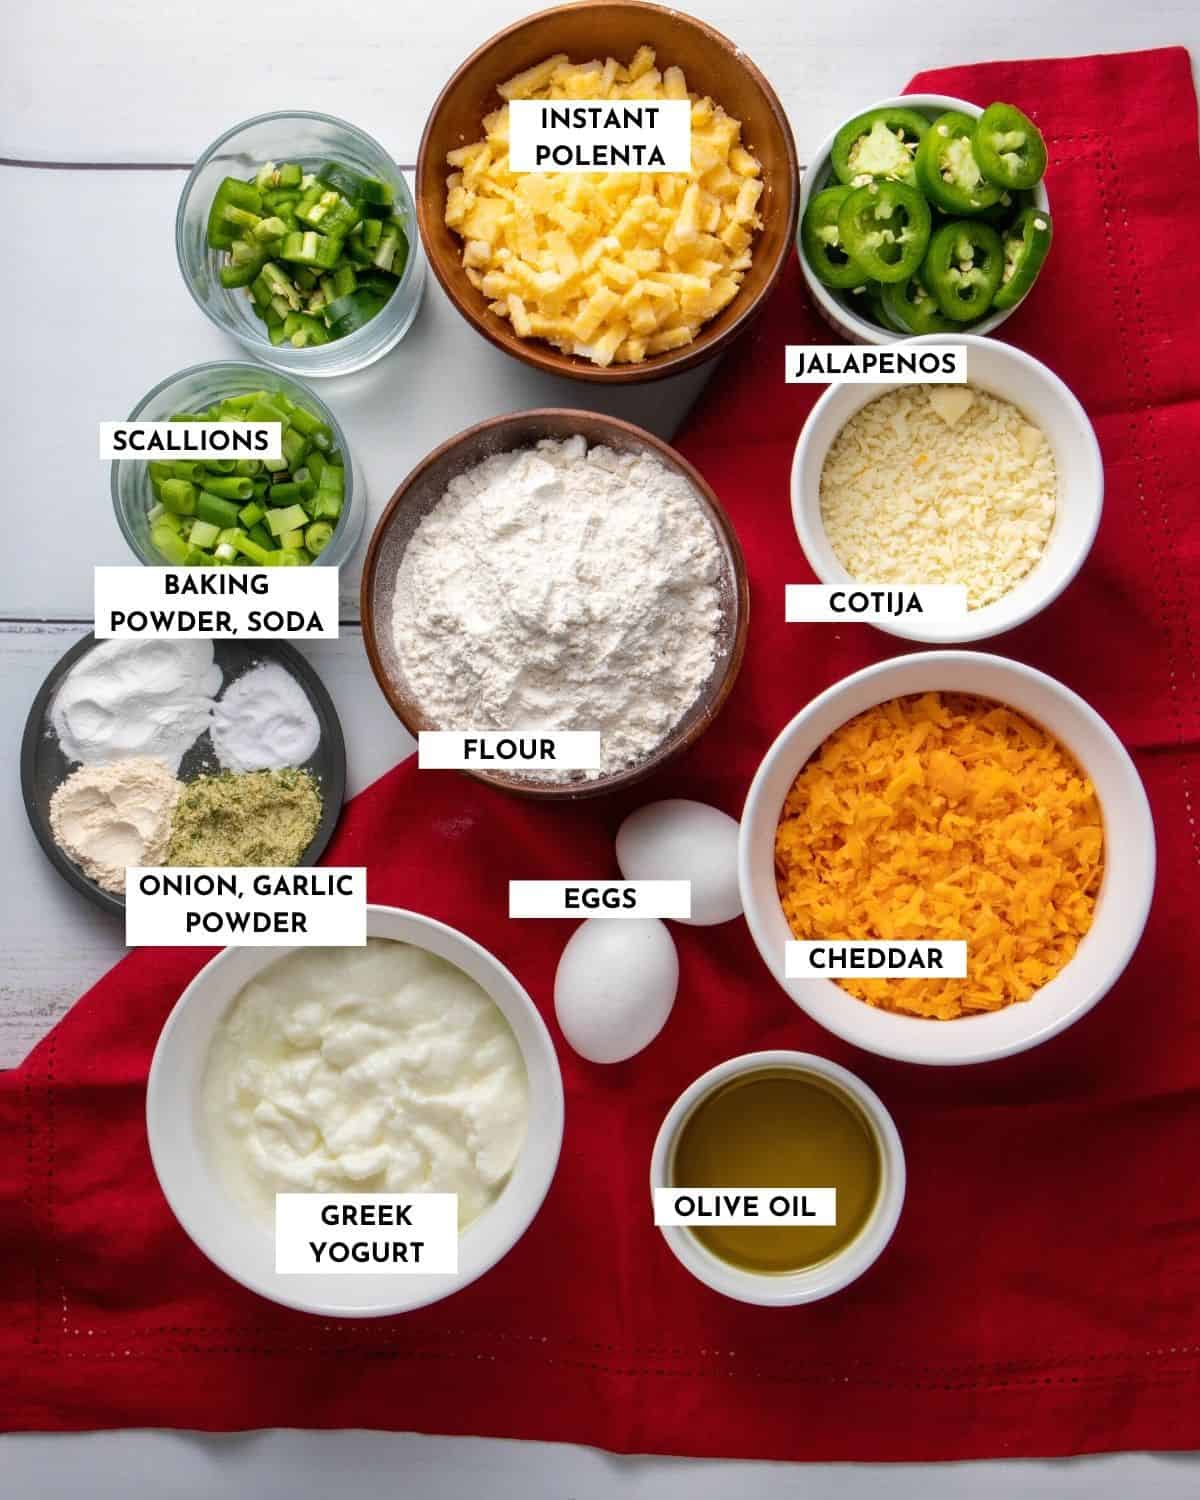 Labeled picture showing all the ingredients needed for skillet cornbread, sorted by dry / batter / toppings